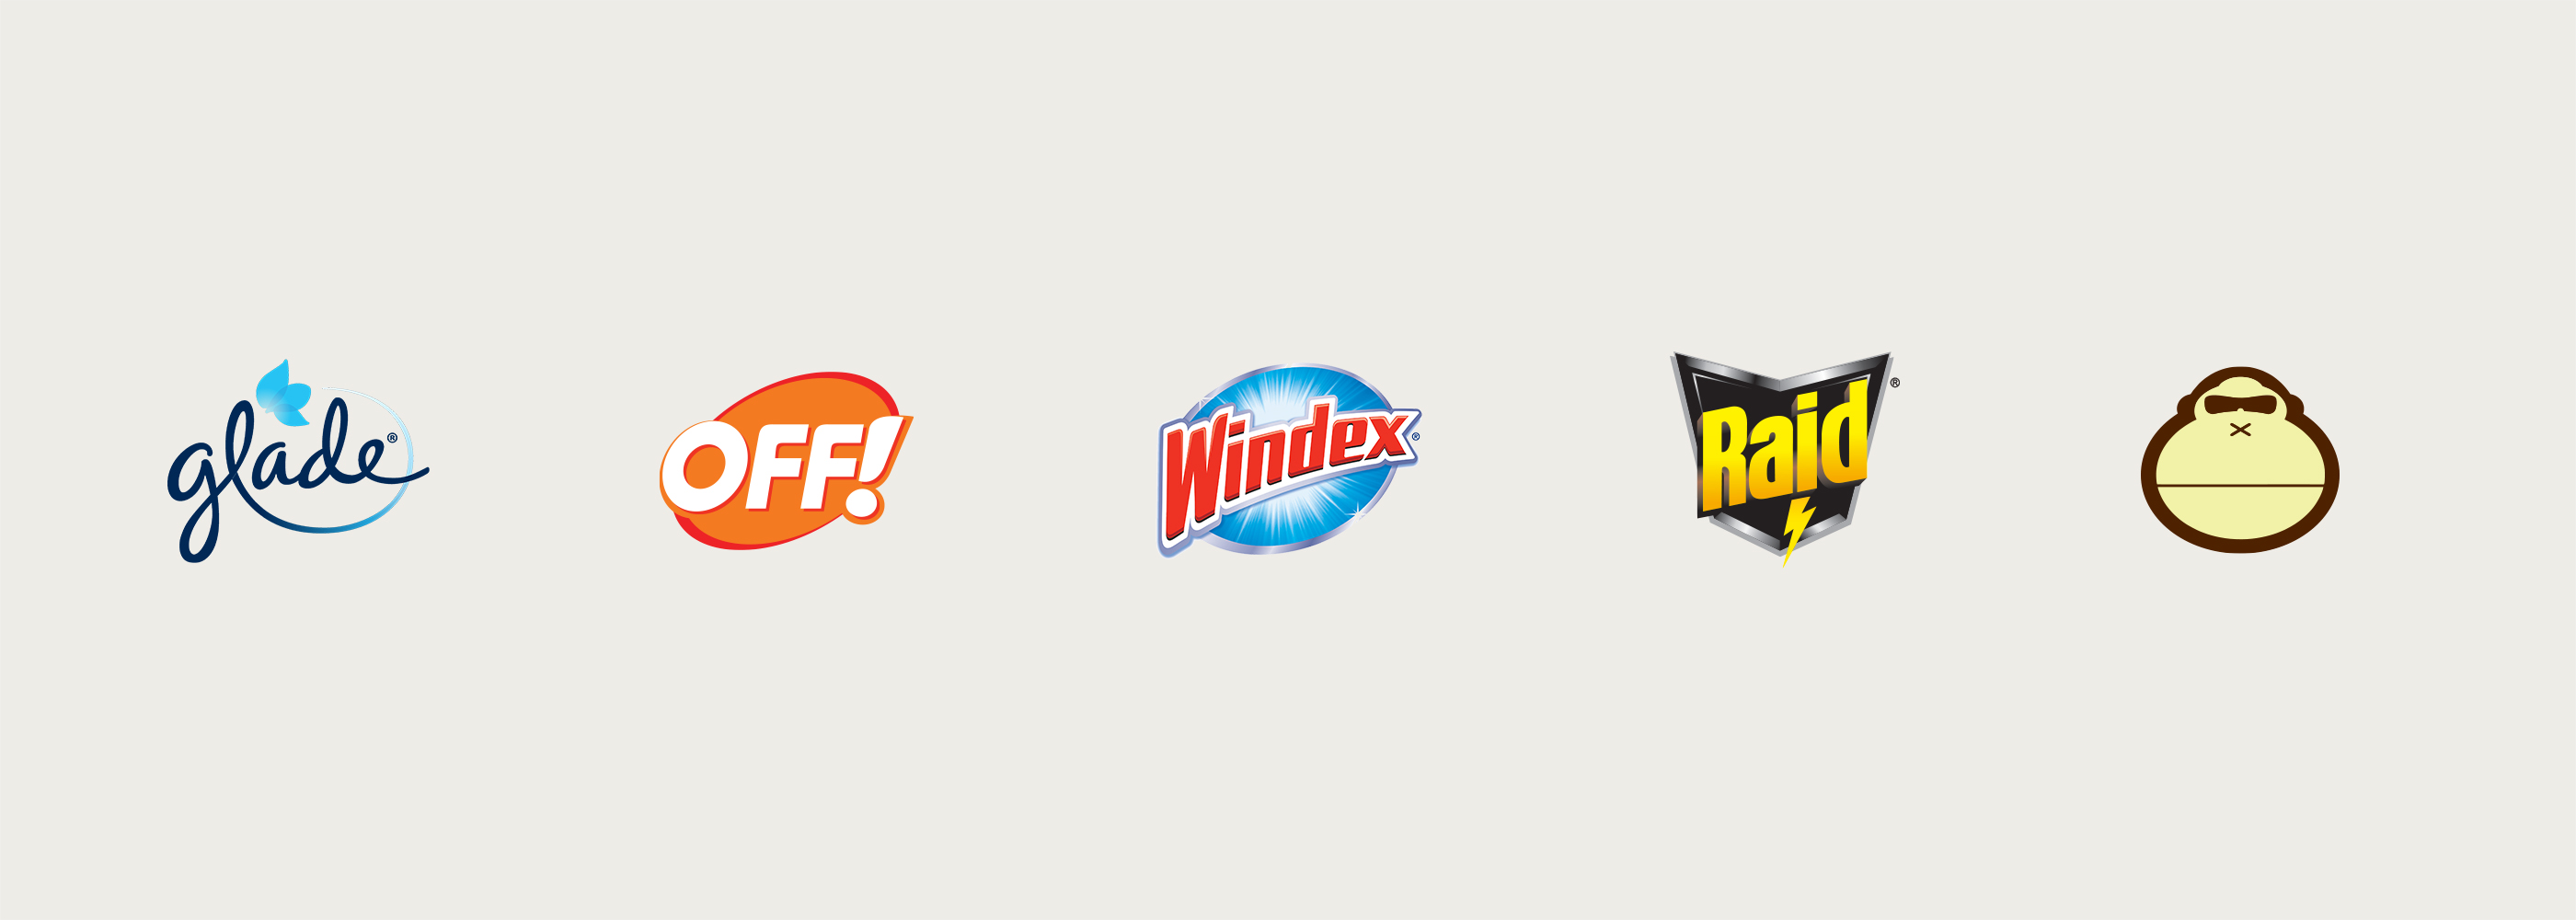 Product brand logos from SC Johnson.